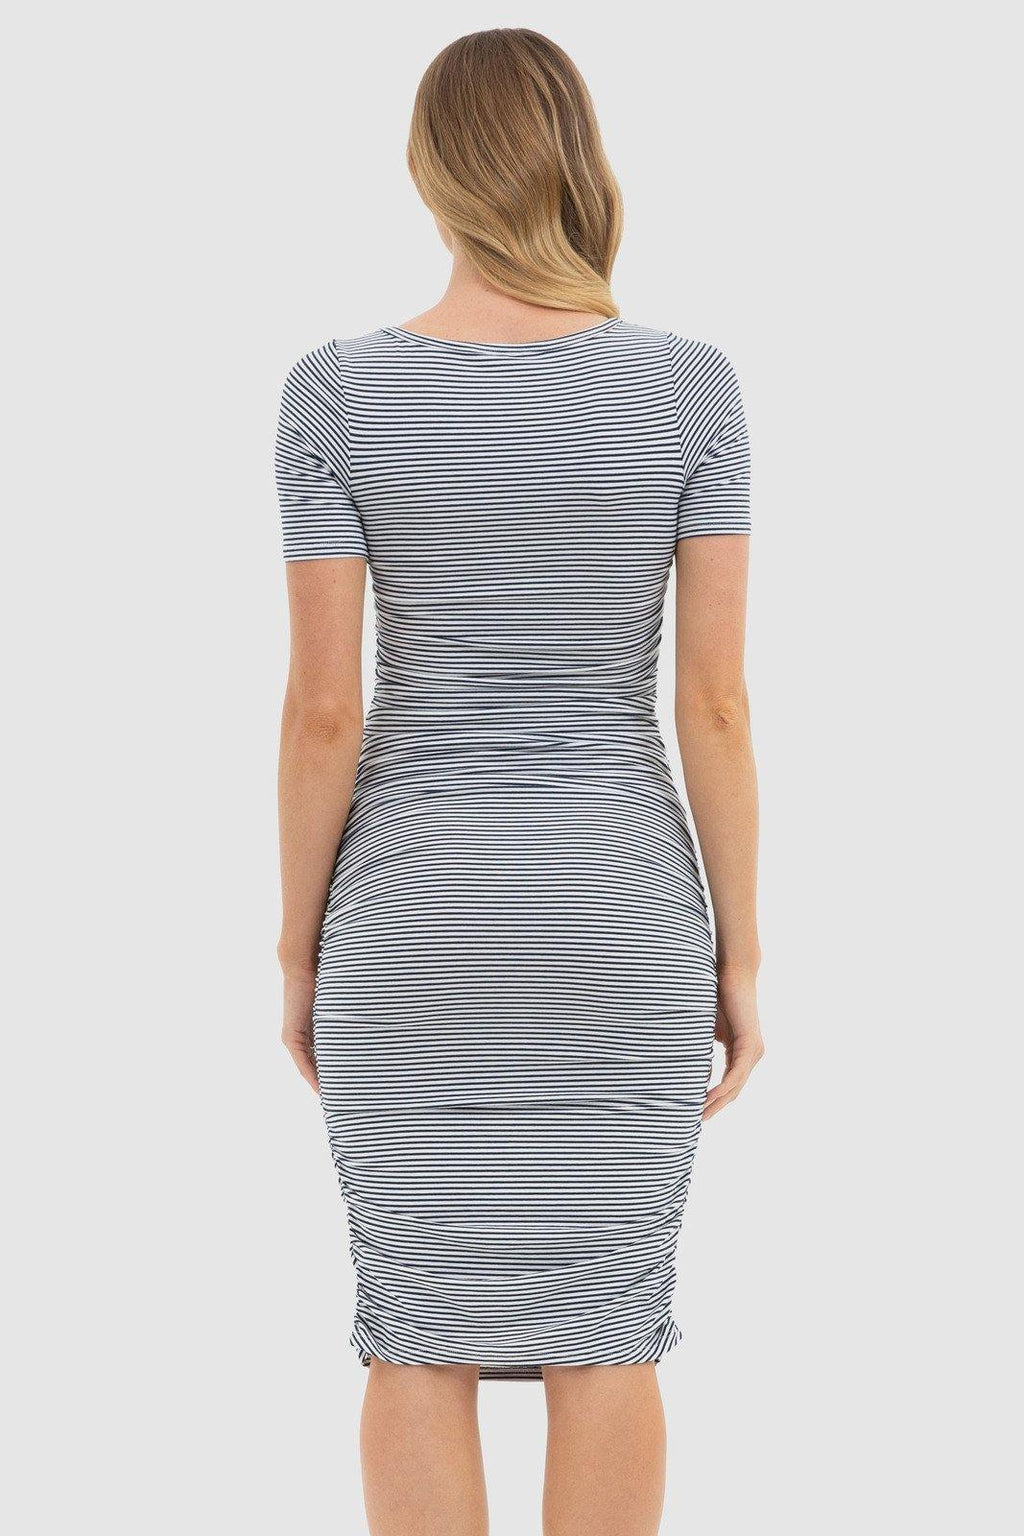 Bamboo Body Jasper Ruched Dress - Navy & White Stripe | Buy Online at Weekends